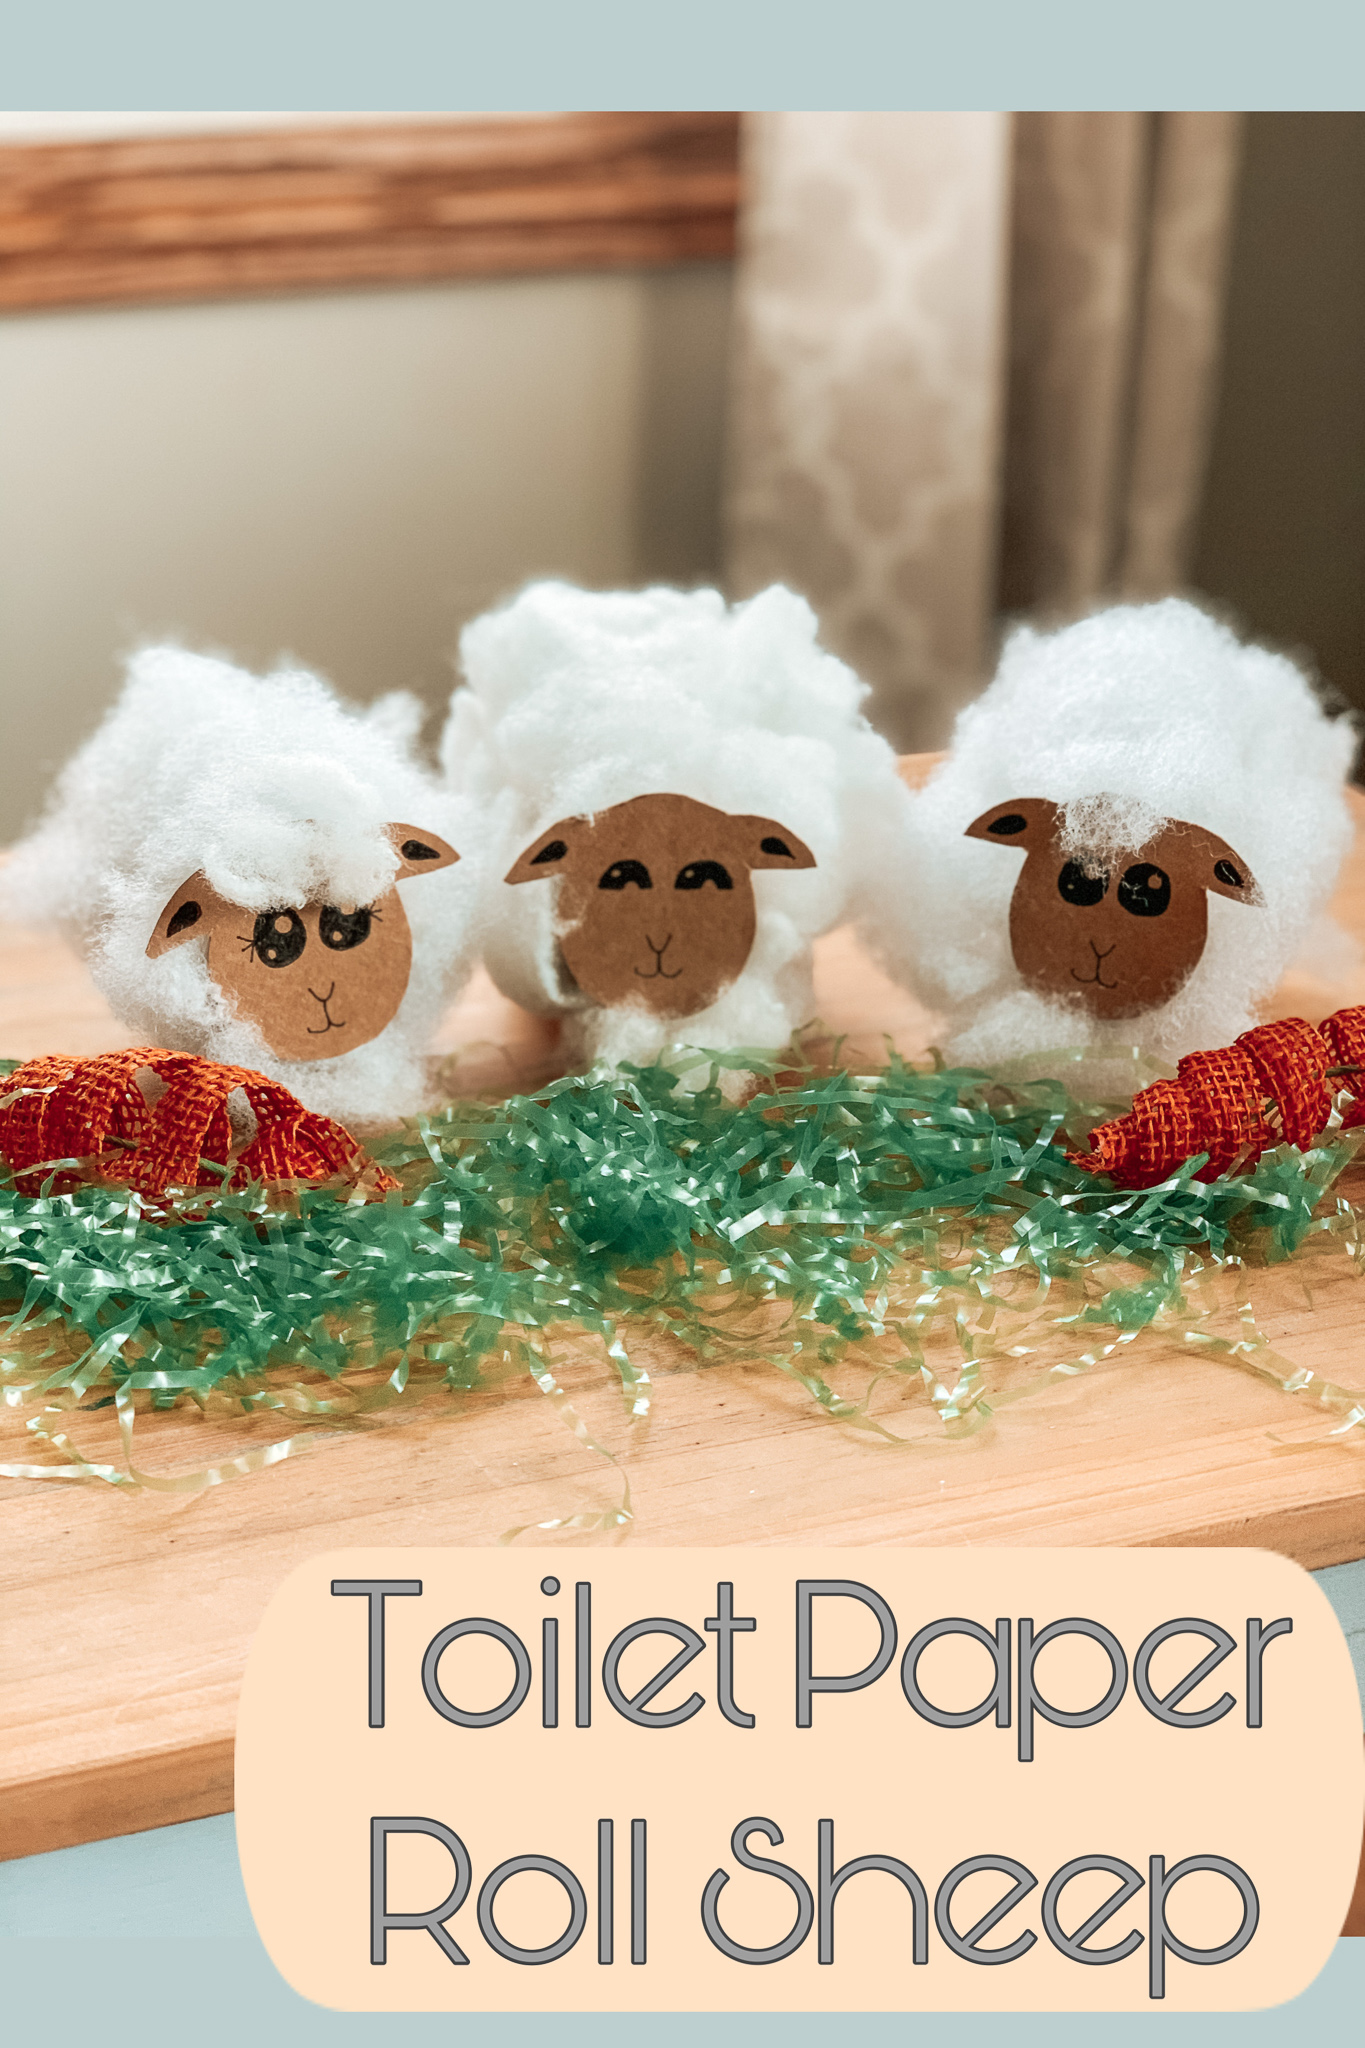 Toilet Paper Roll Sheep